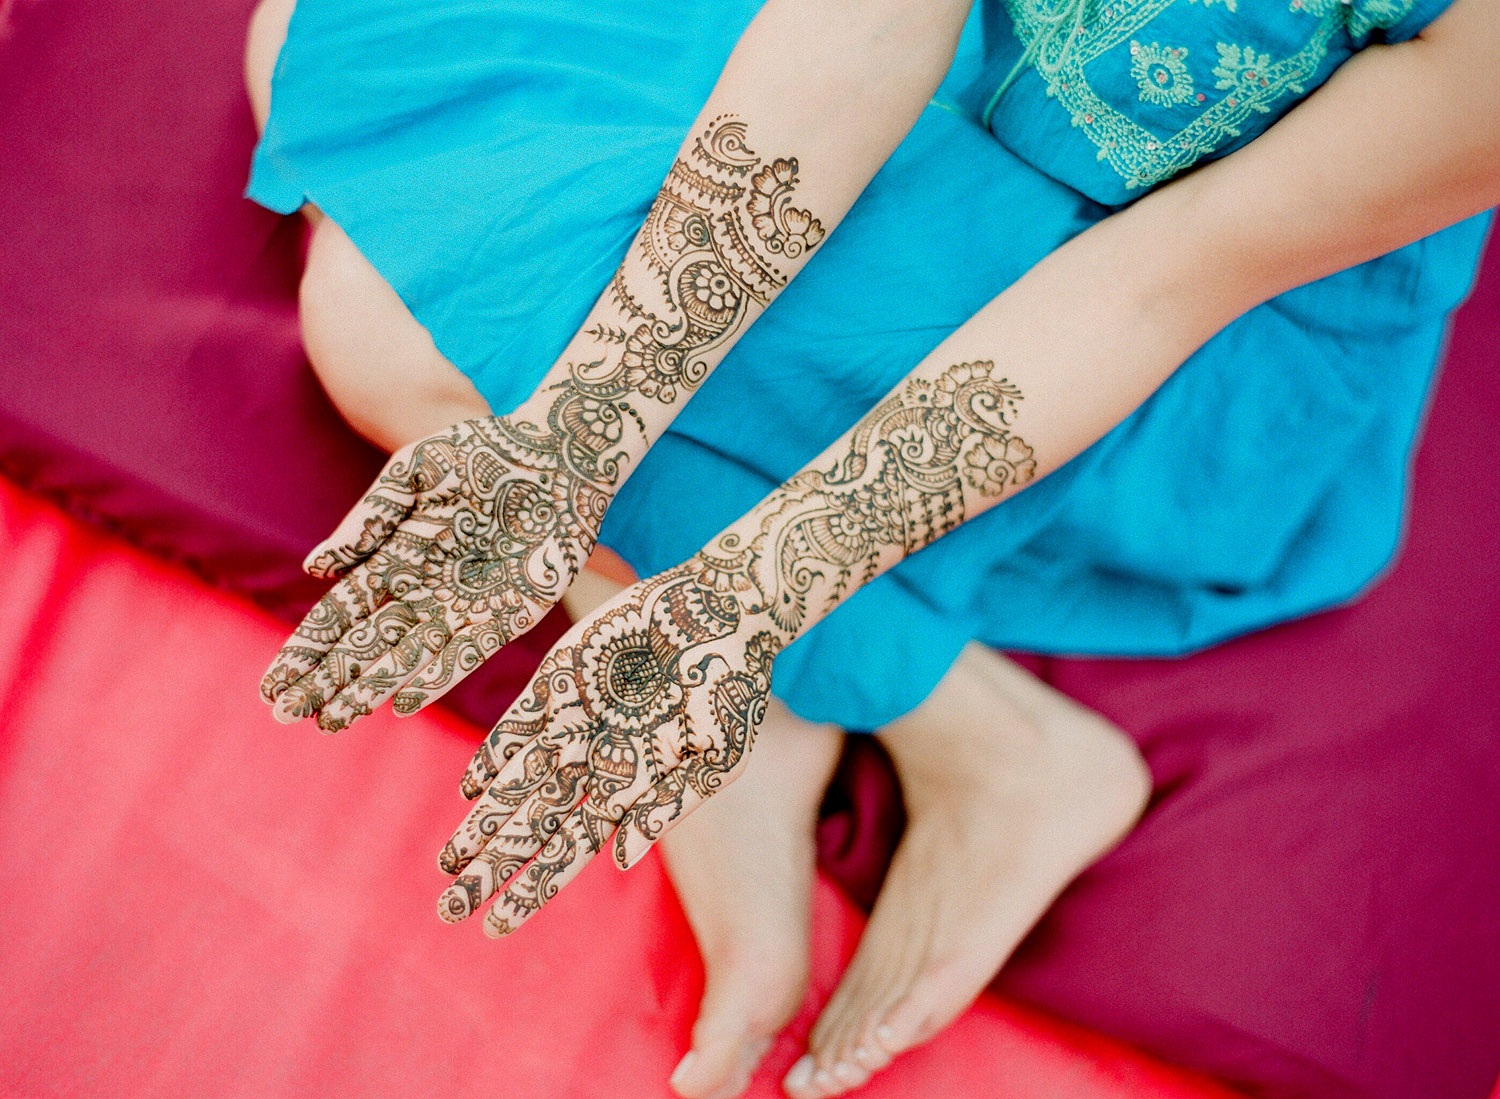 a colorful film photograph of an indian wedding mehndi ceremony in palm coast florida at the hammock beach resortwith a beautiful minimalist mehndi design on an indian bride. Destination wedding photographer, Lexia Frank, is a top Indian wedding photographer photographing luxury indian weddings in florida and worldwide on film